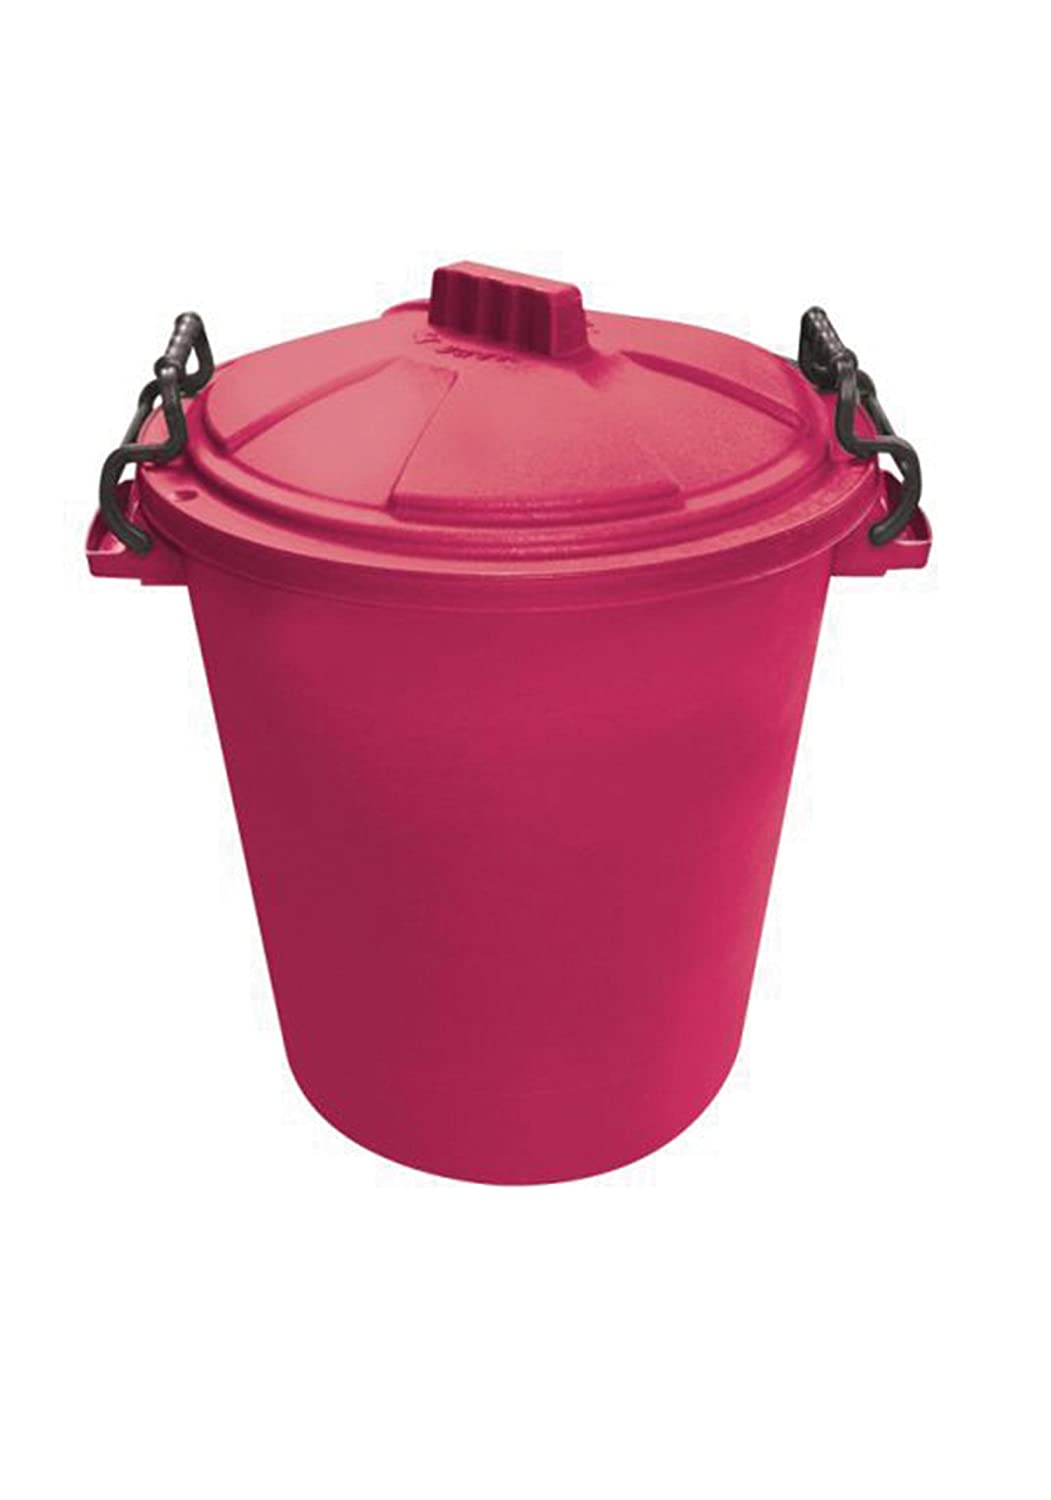 Saddlers Heavy Duty Dustbin with Clip On Lid, 50 Liter, Green 957-0050GN